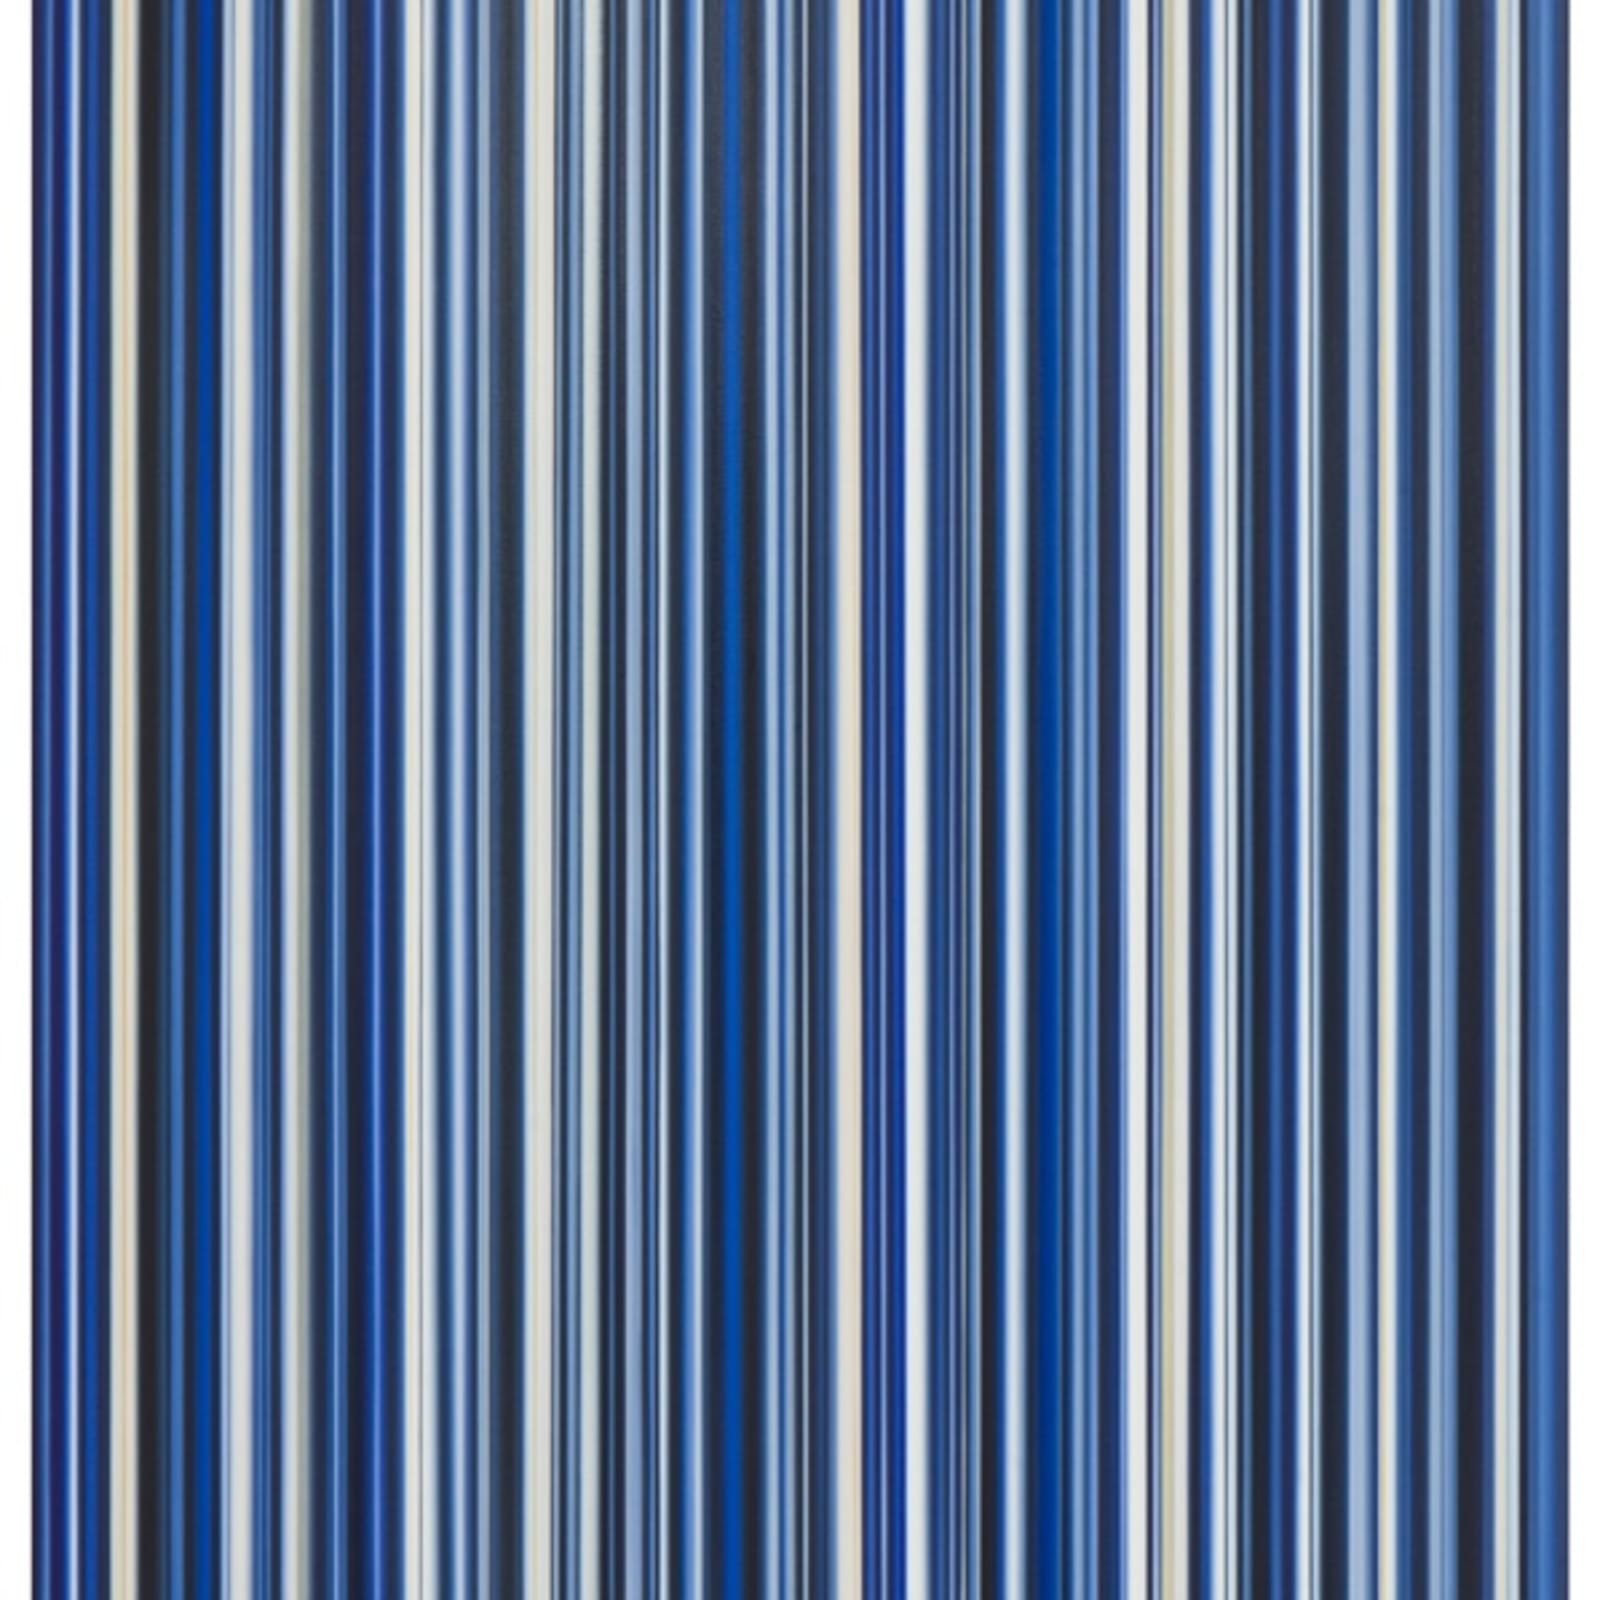 Stripes Nr. 78 to feature in exhibition at the Ackland Museum